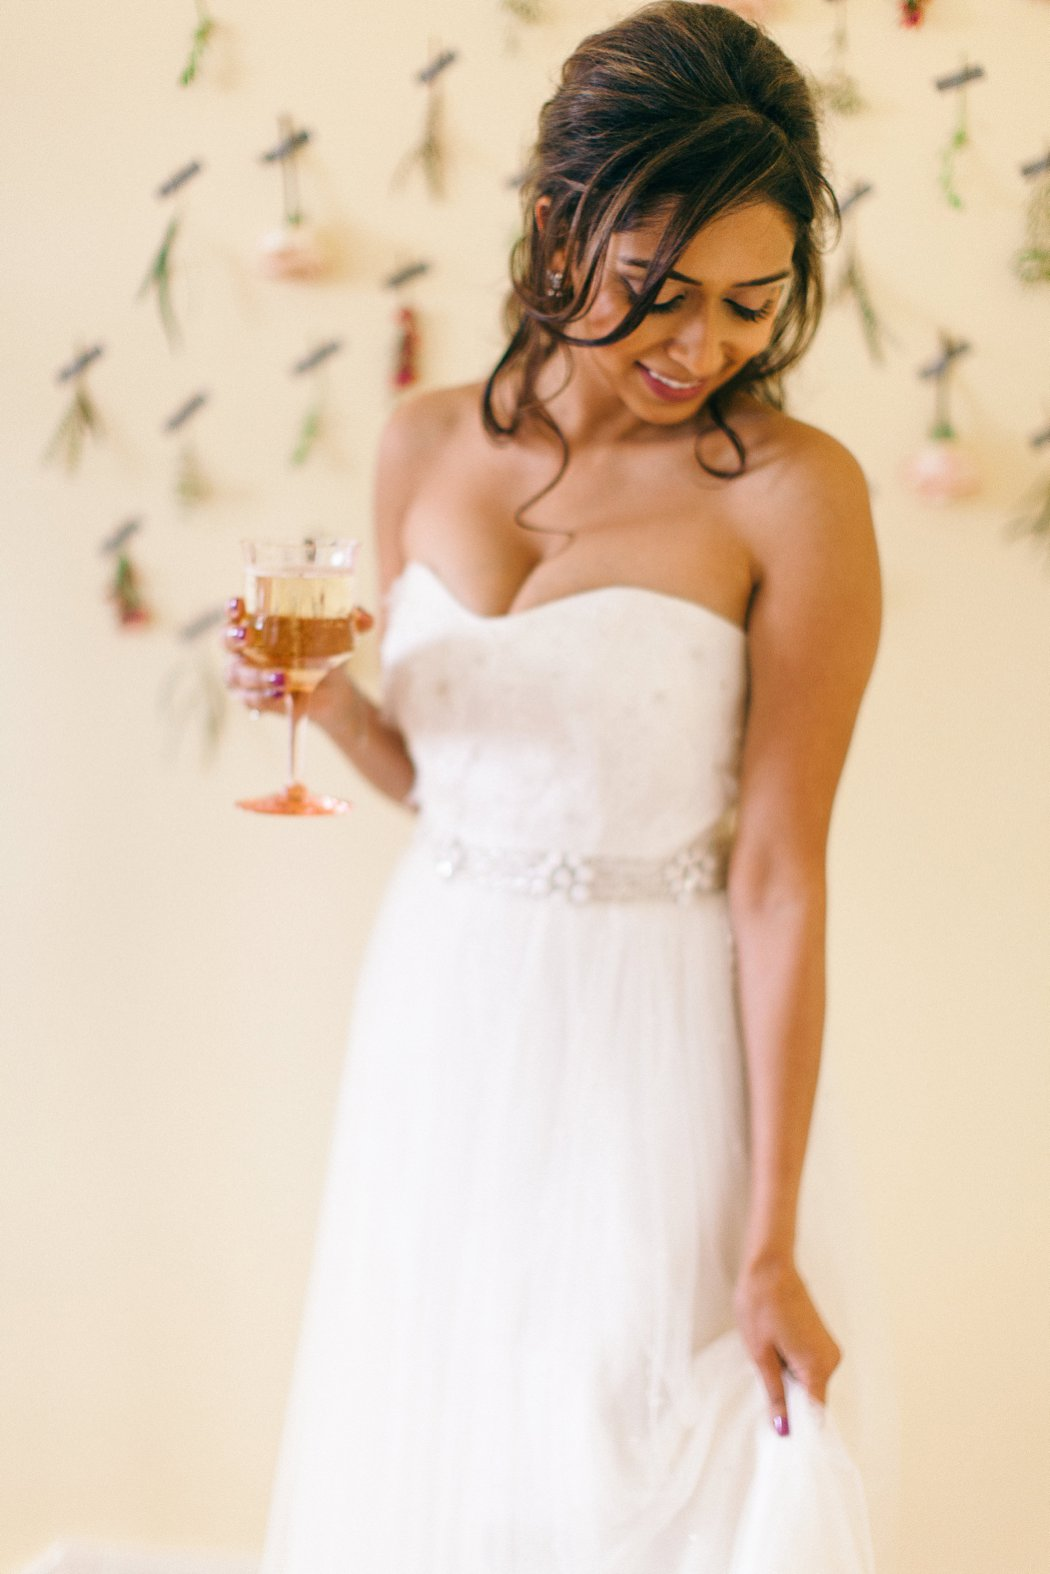 amanda_burnette_richmond_wedding_florist_wedding_organic_flowers_bridal-portrait_boudoir-photo_0005.jpg